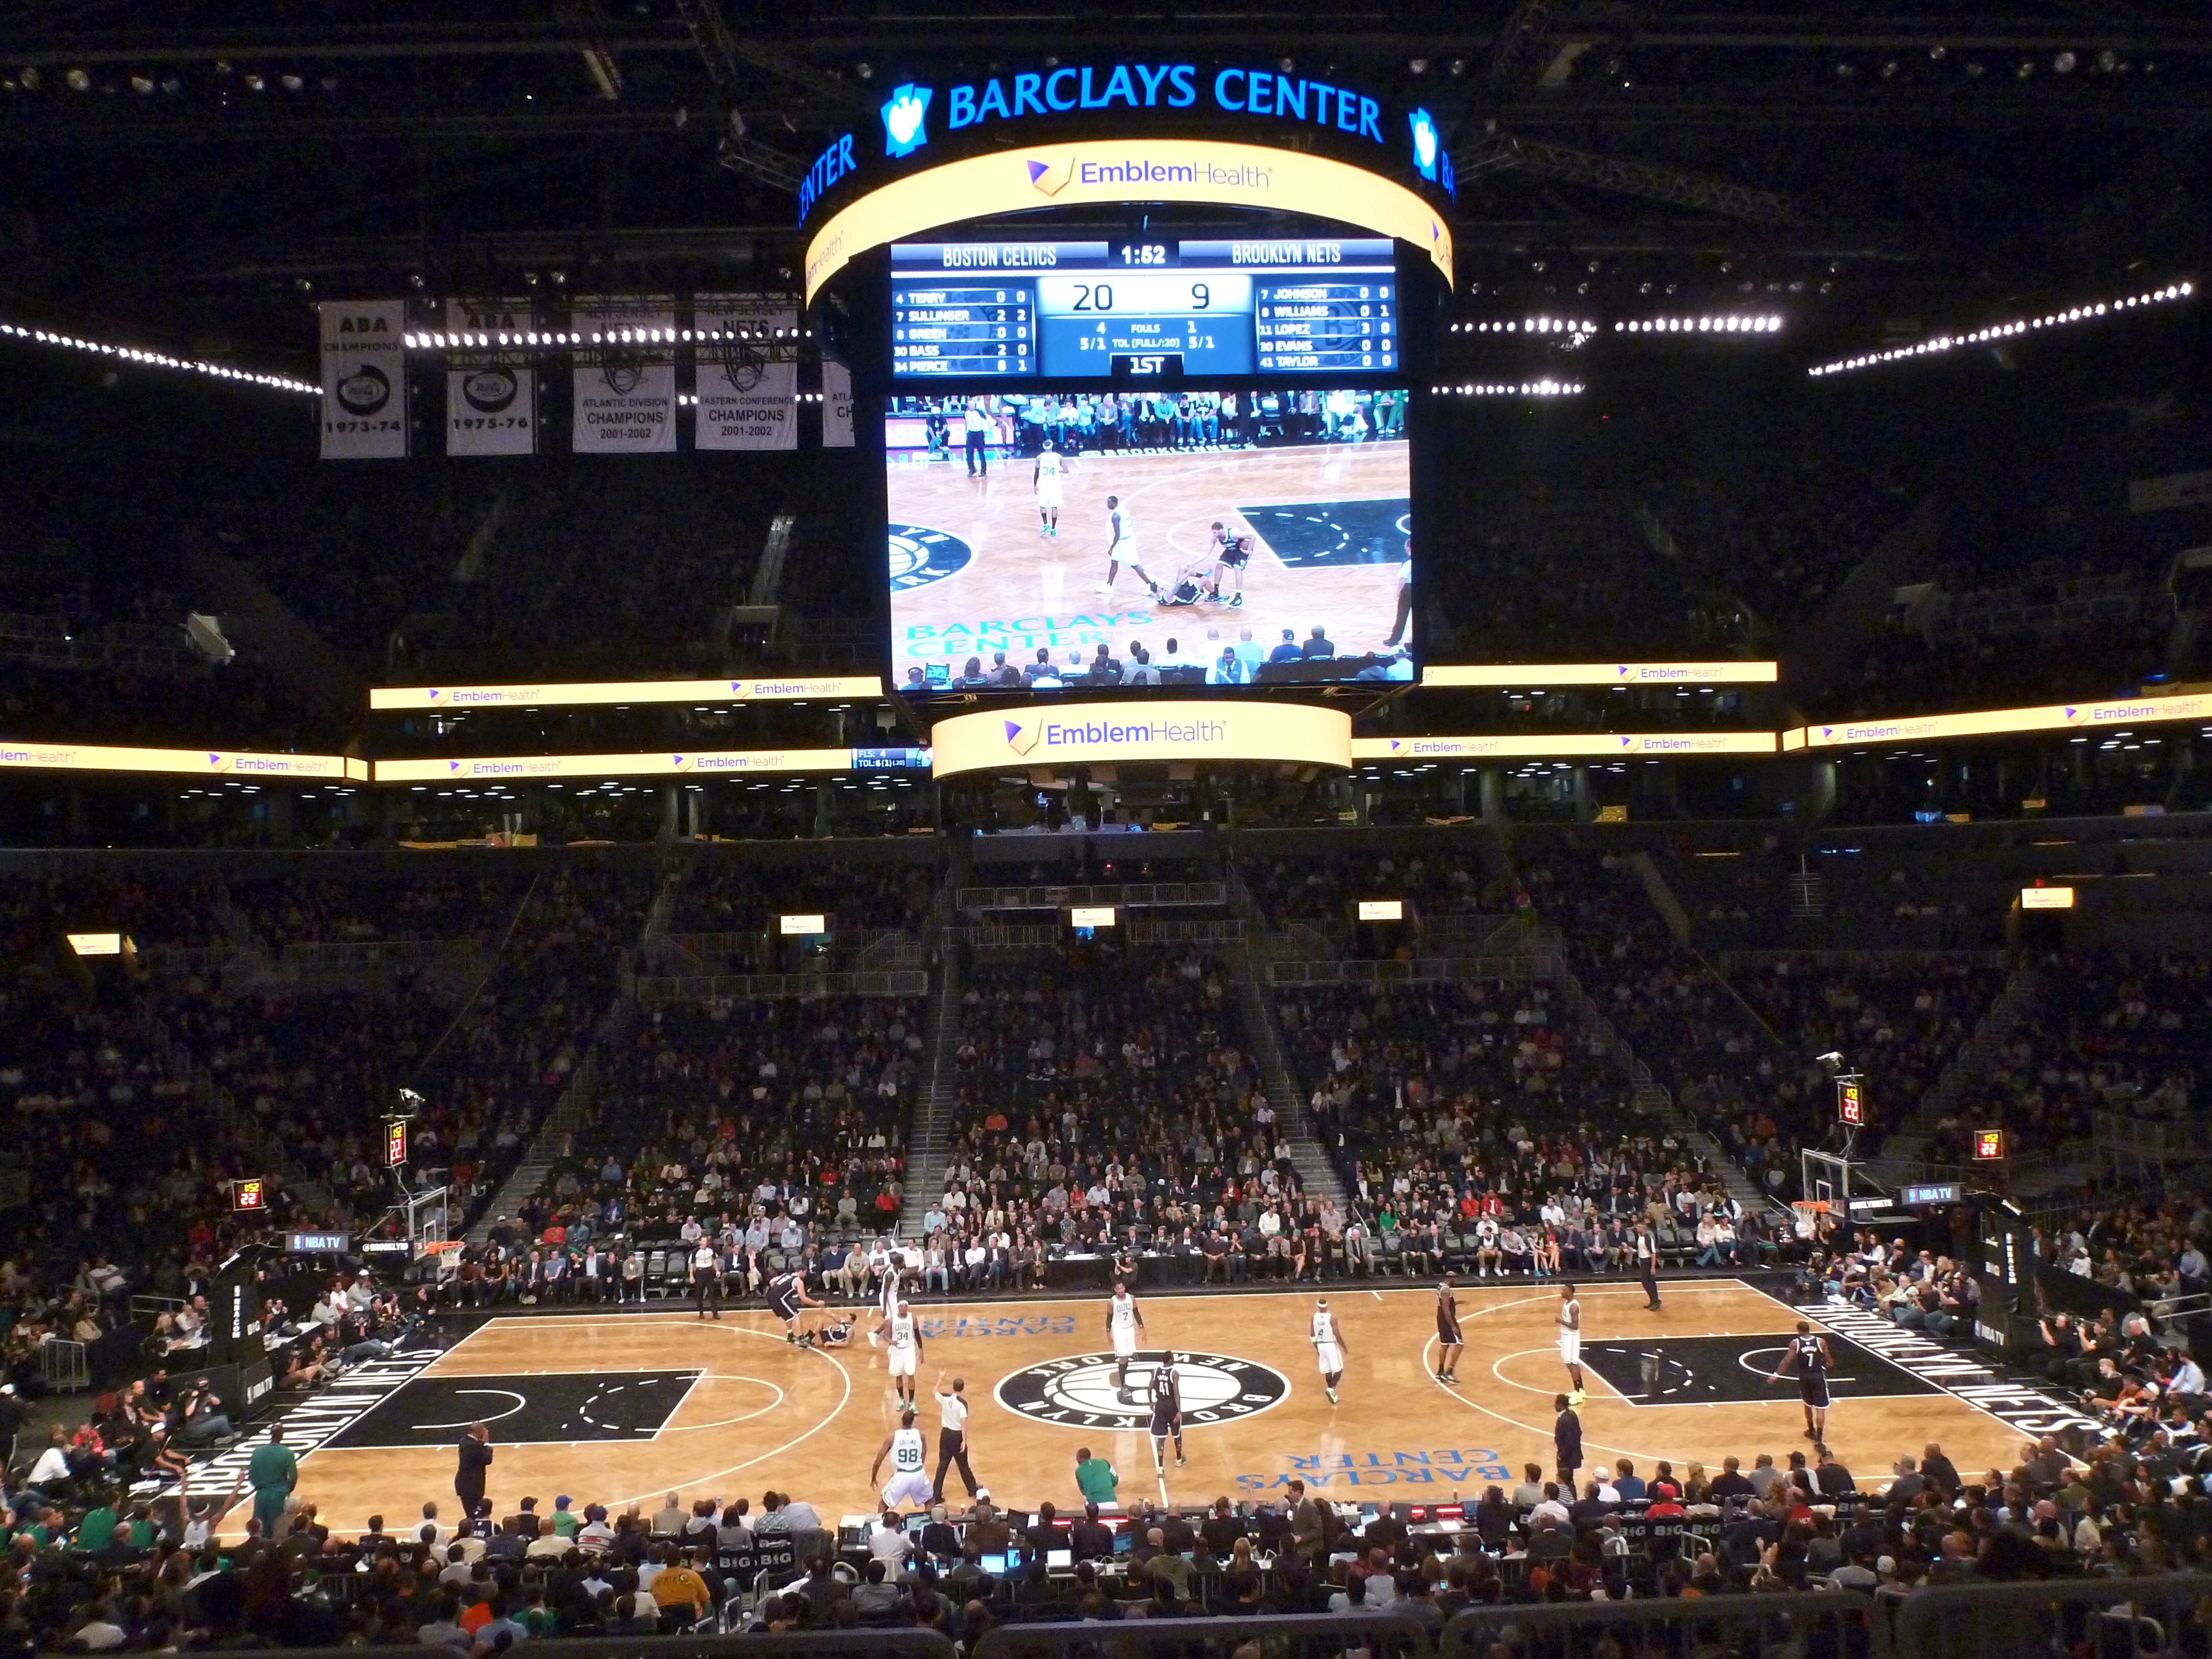 file:barclays center boston celtics-brooklyn nets 2012